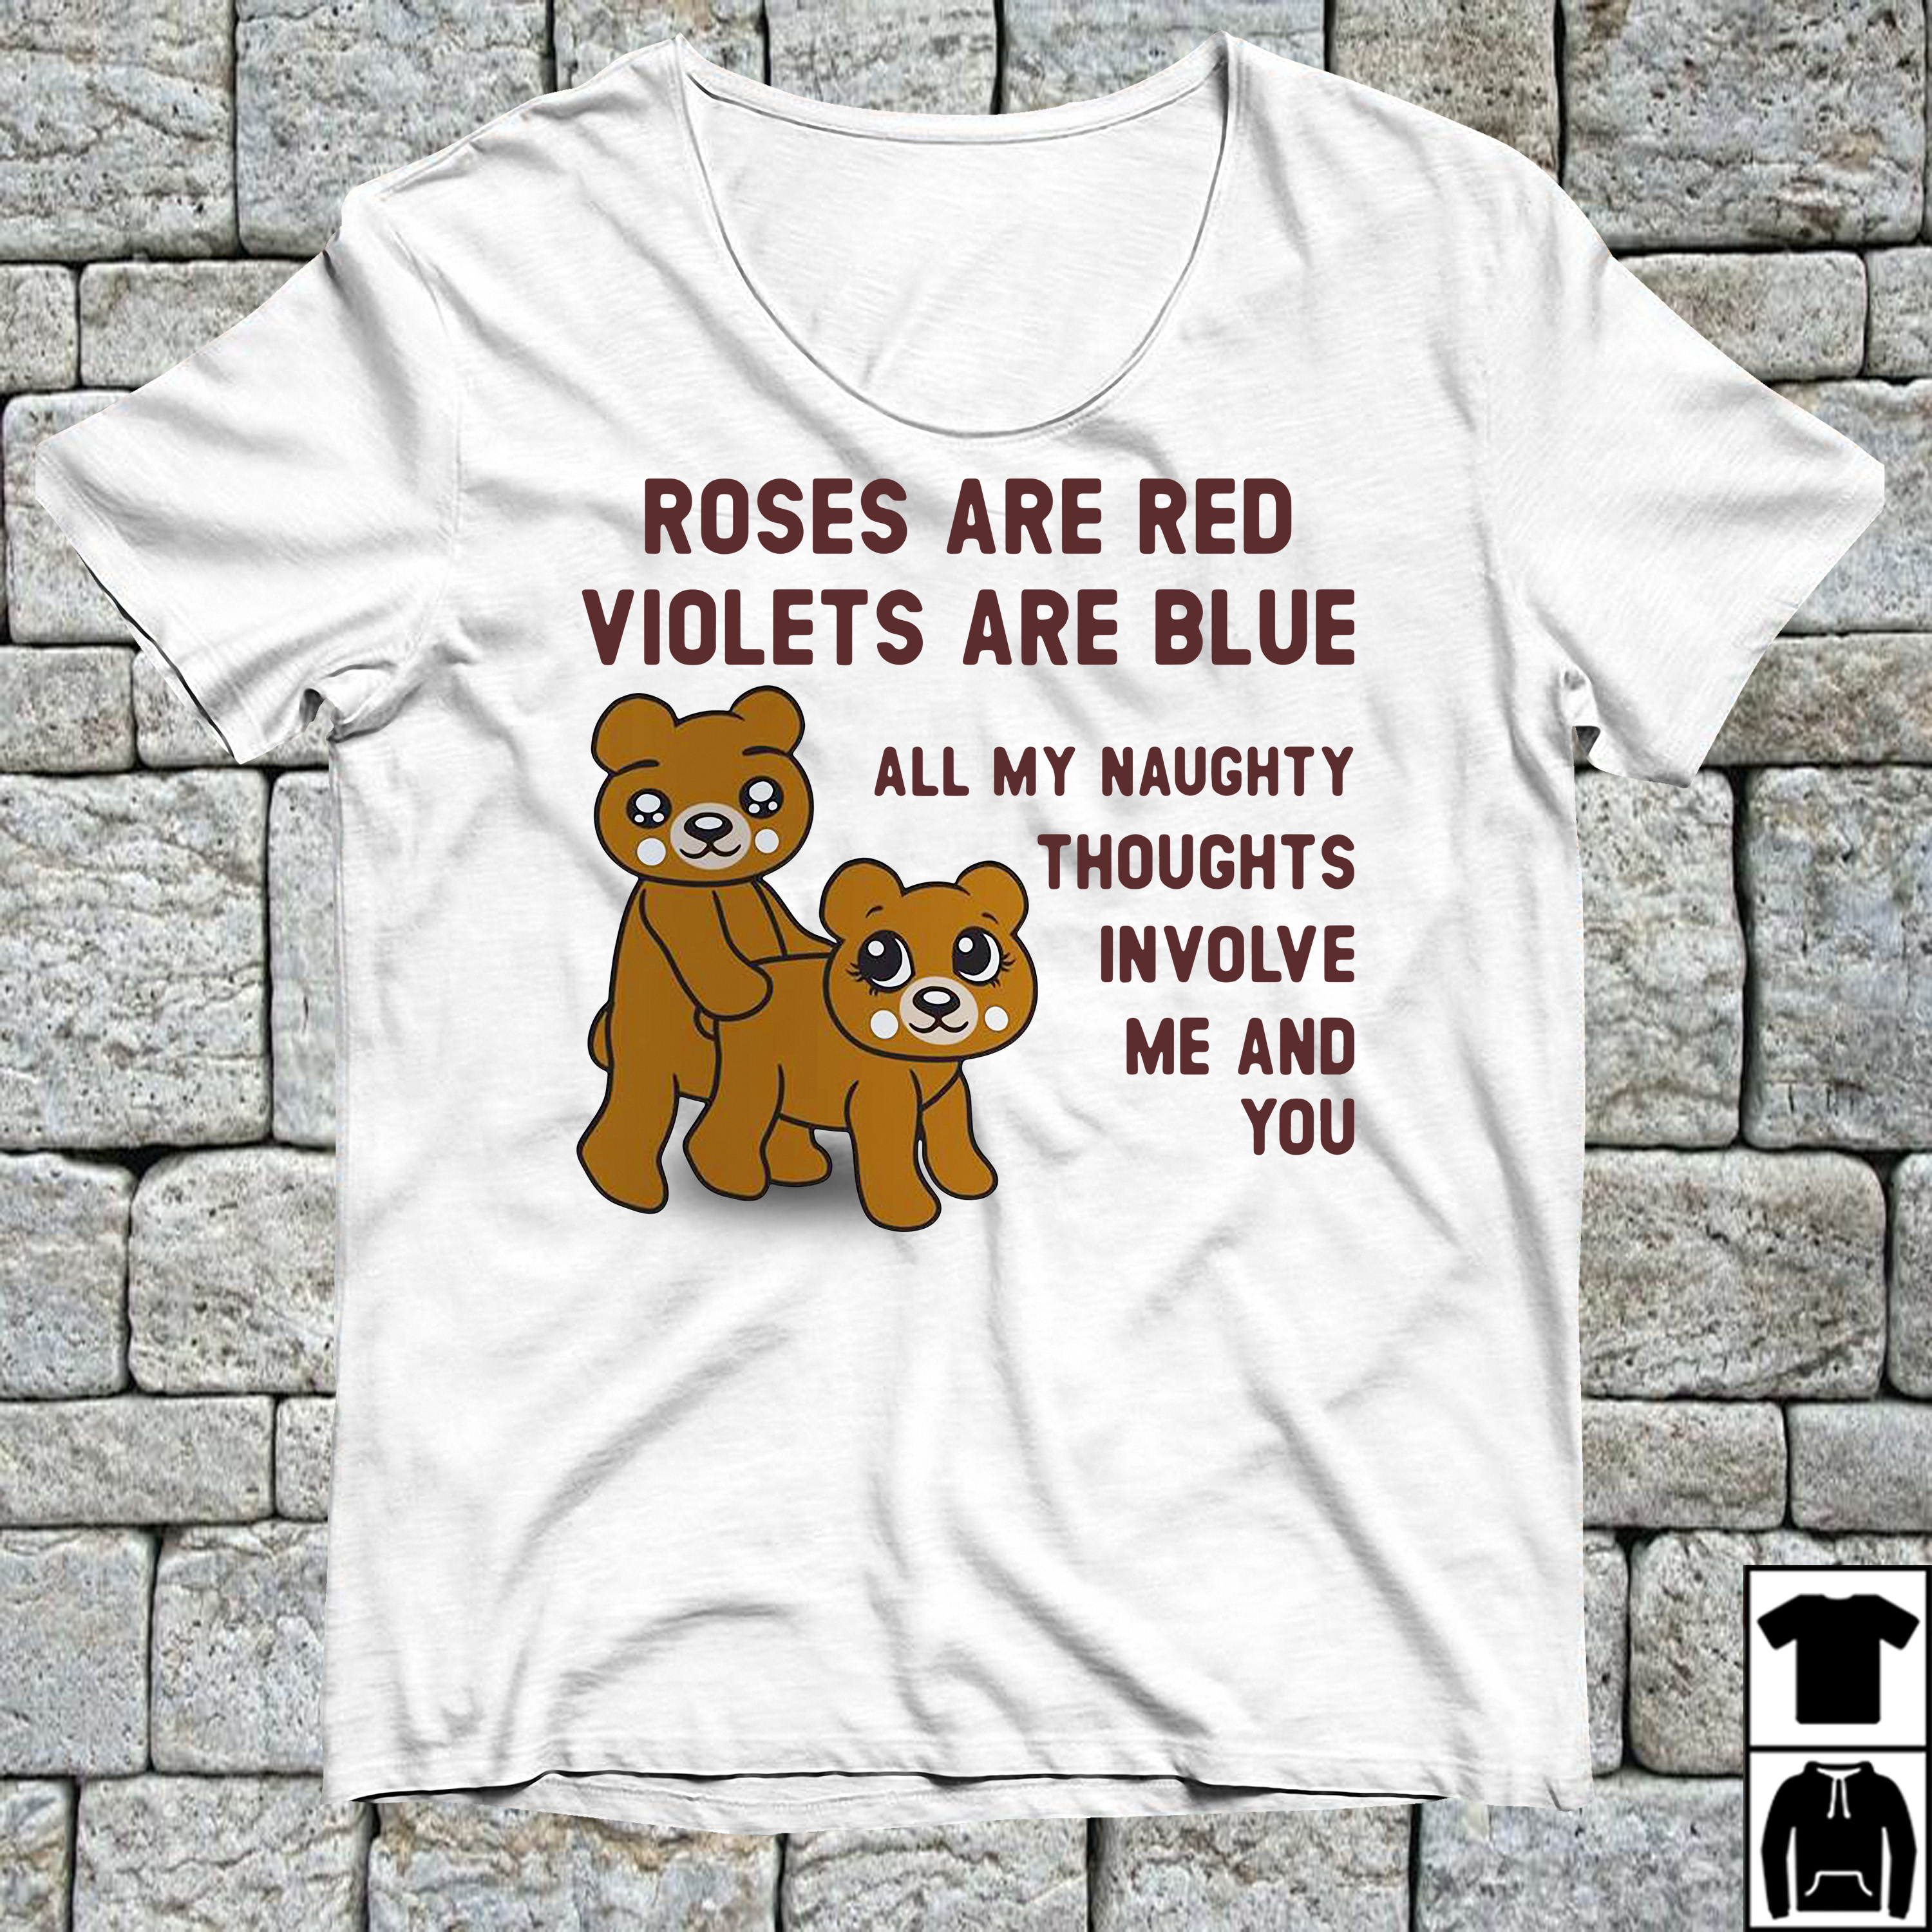 Roses are red violets are blue all my naughty thoughts involve me and you shirt